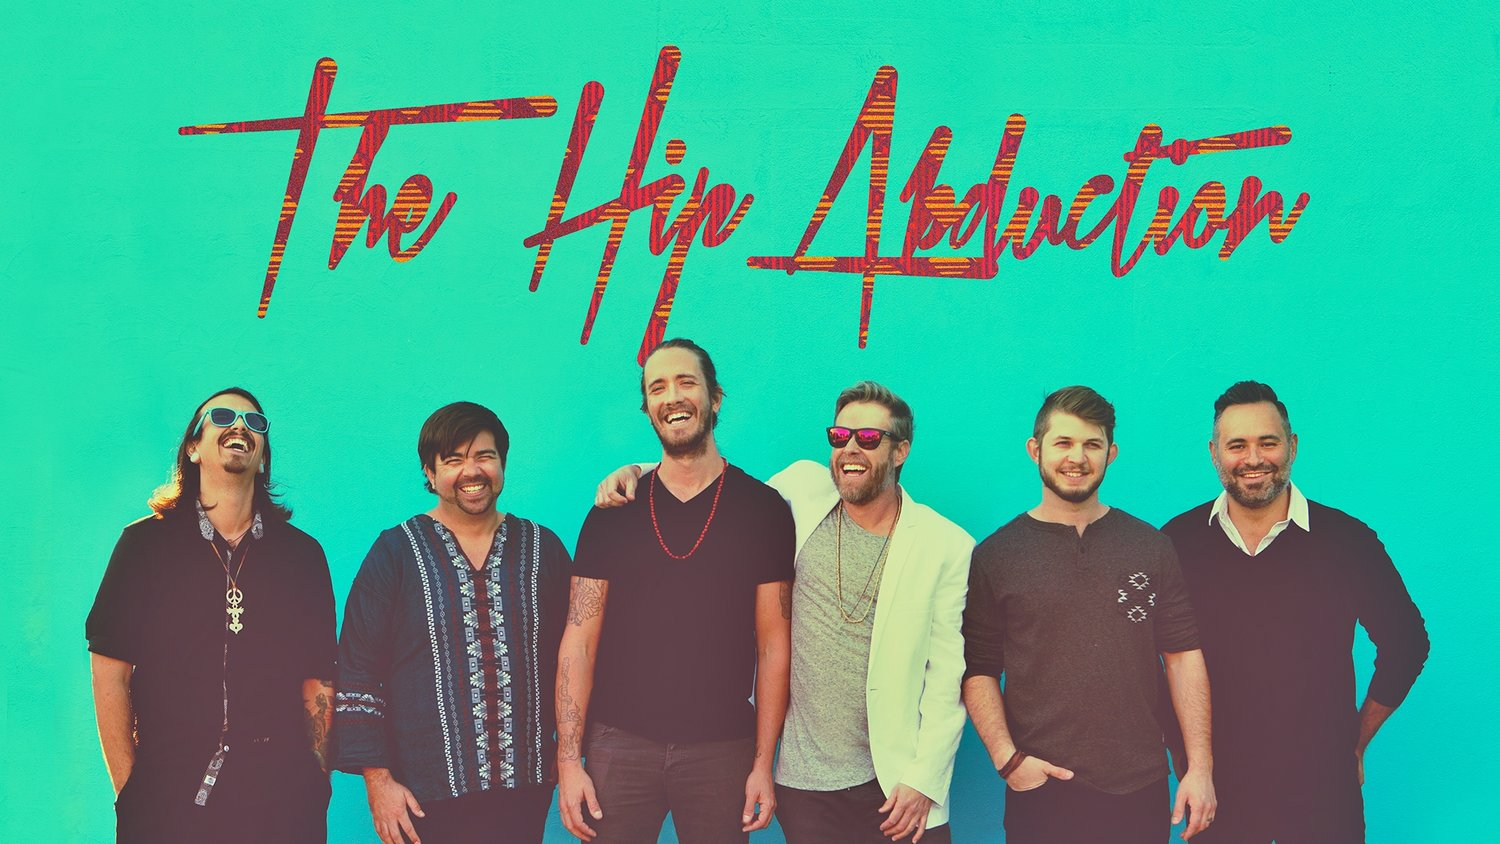 The Hip Abduction (THA) did exactly that. - With afro-pop overtones and worldly indie influences, the seven man band from Florida captured the hips of concert-goers at U Street Music Hall last week.